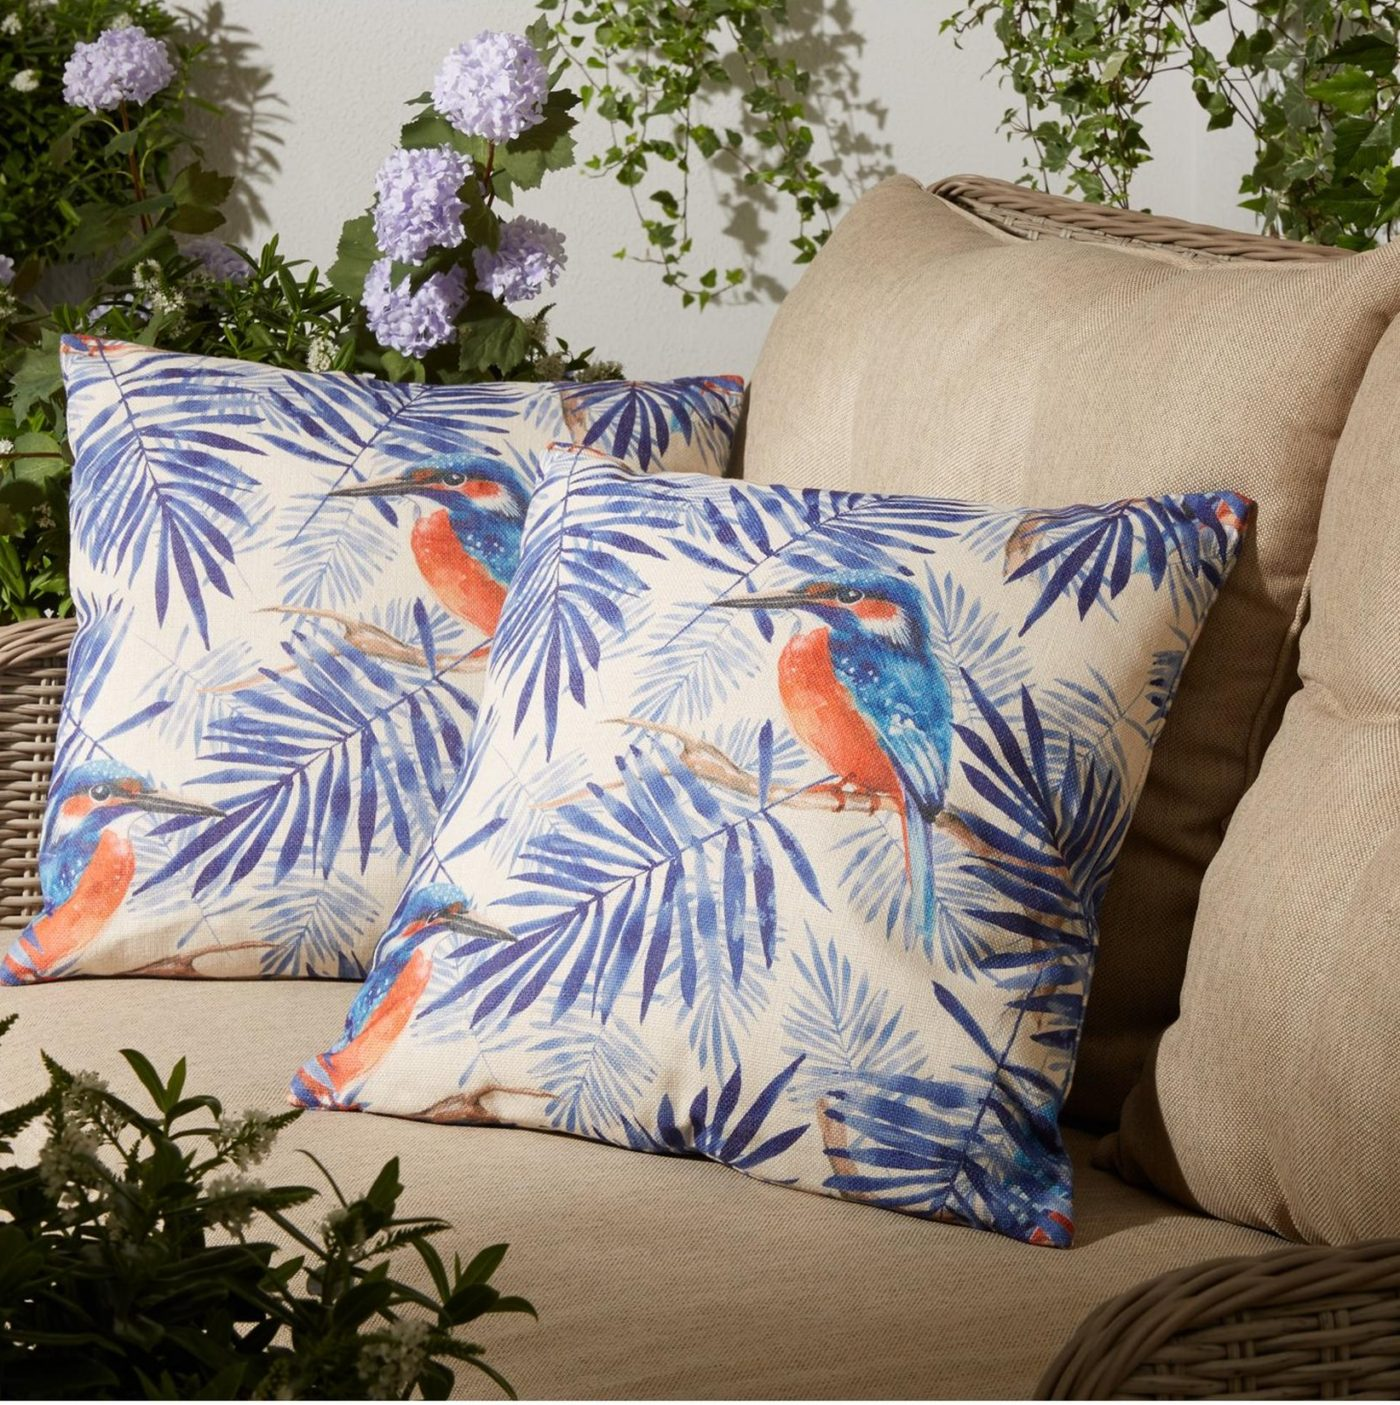 kingfisher garden cushion